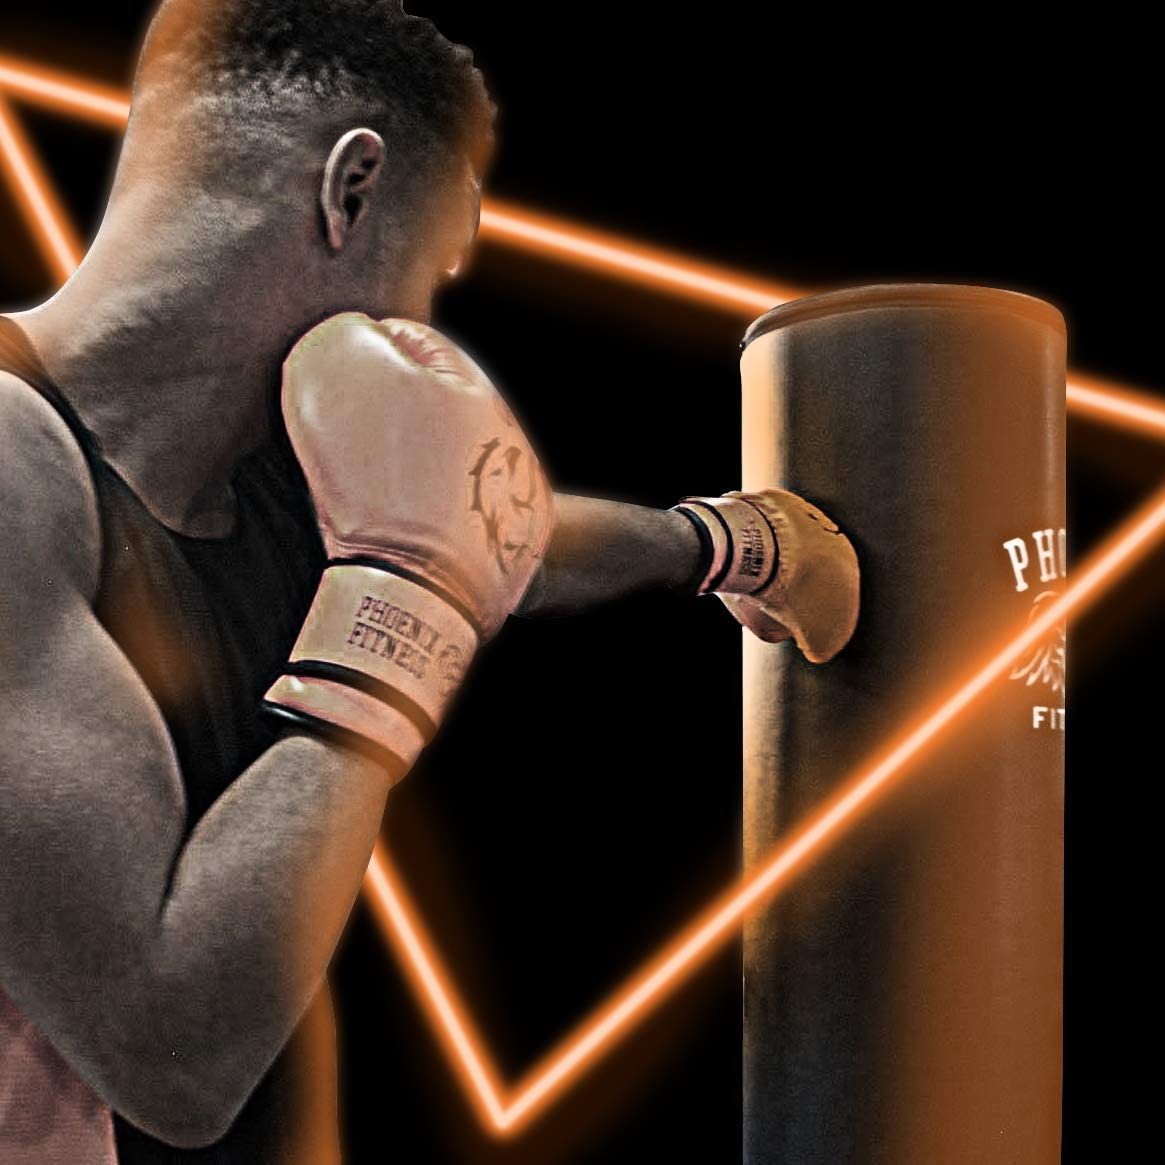 Heavy Bag MMA Dummy Punching Bag Equipment For Kickboxing Martial Arts and General Health and Fitness Exercise Phoenix Fitness Boxing Punch Bag Stand Free Standing Pedestal 5.9ft Punchbag